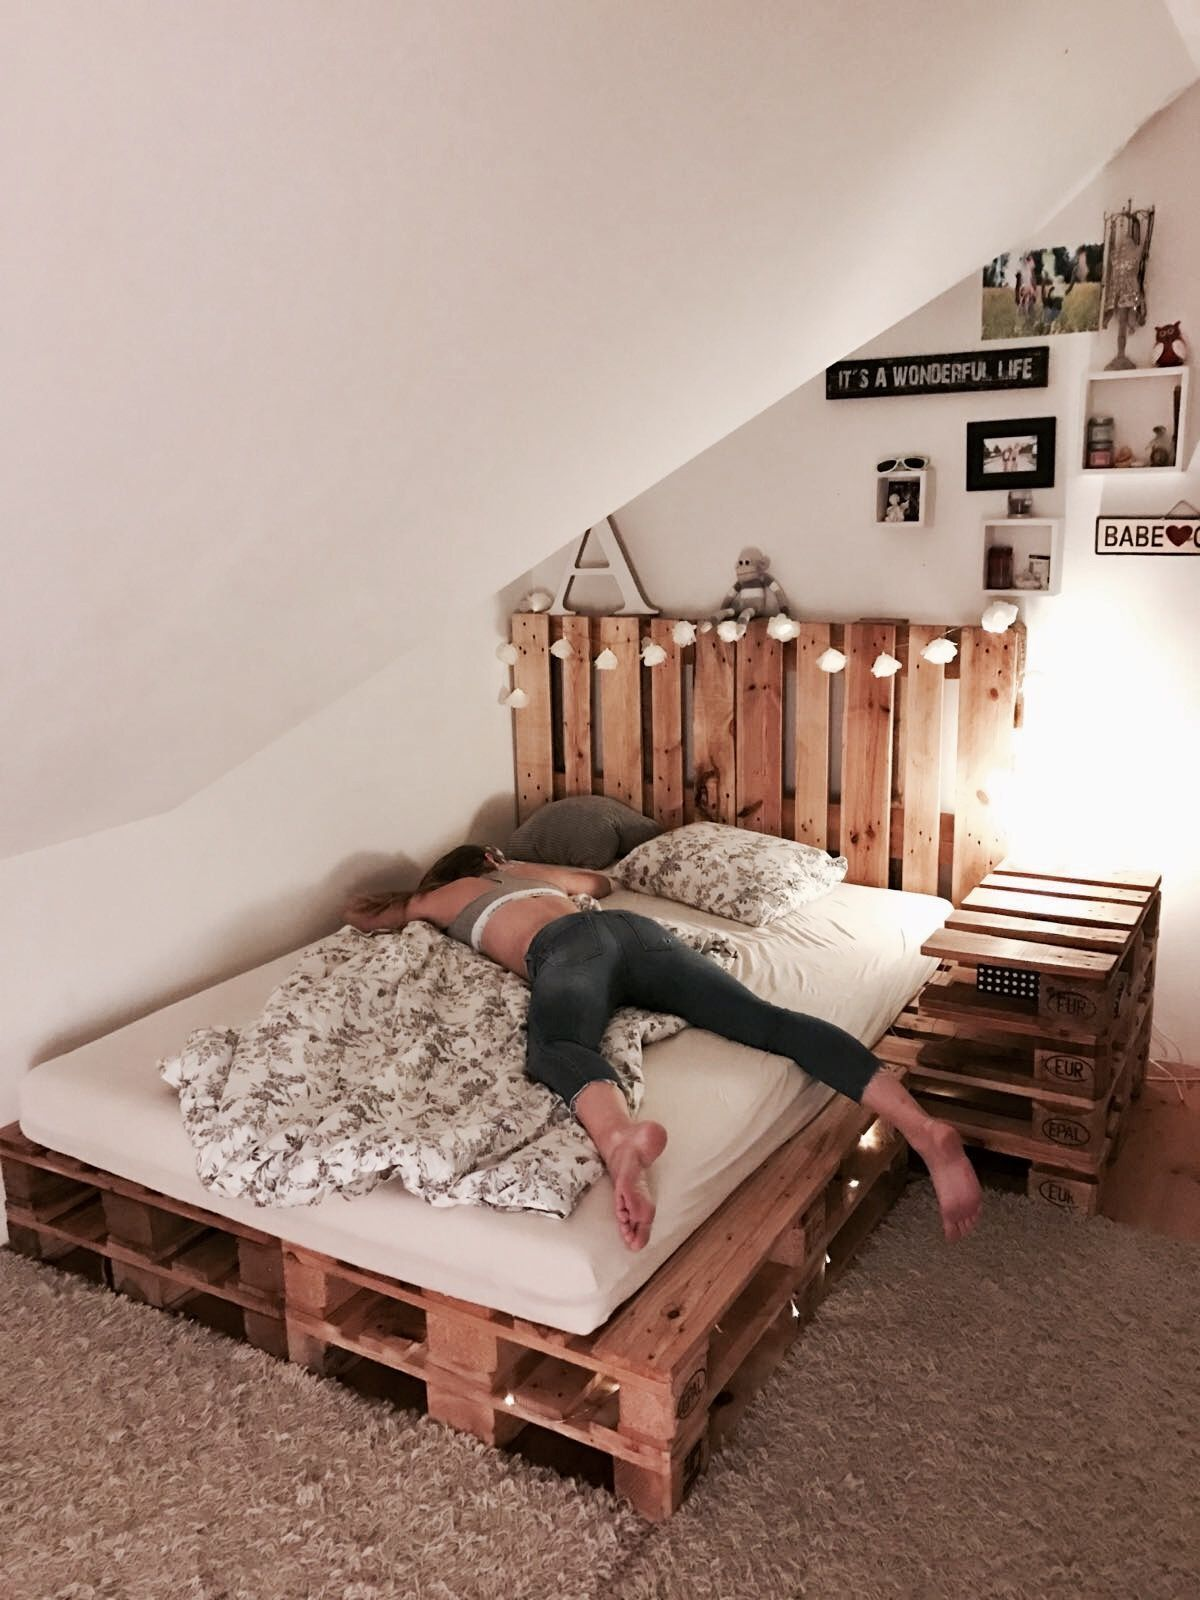 Pallet Bed Diy Out Of 10 Pallets Bedroomideasformen Bedroom Decor Diy Pallet Bed Wood Pallet Beds